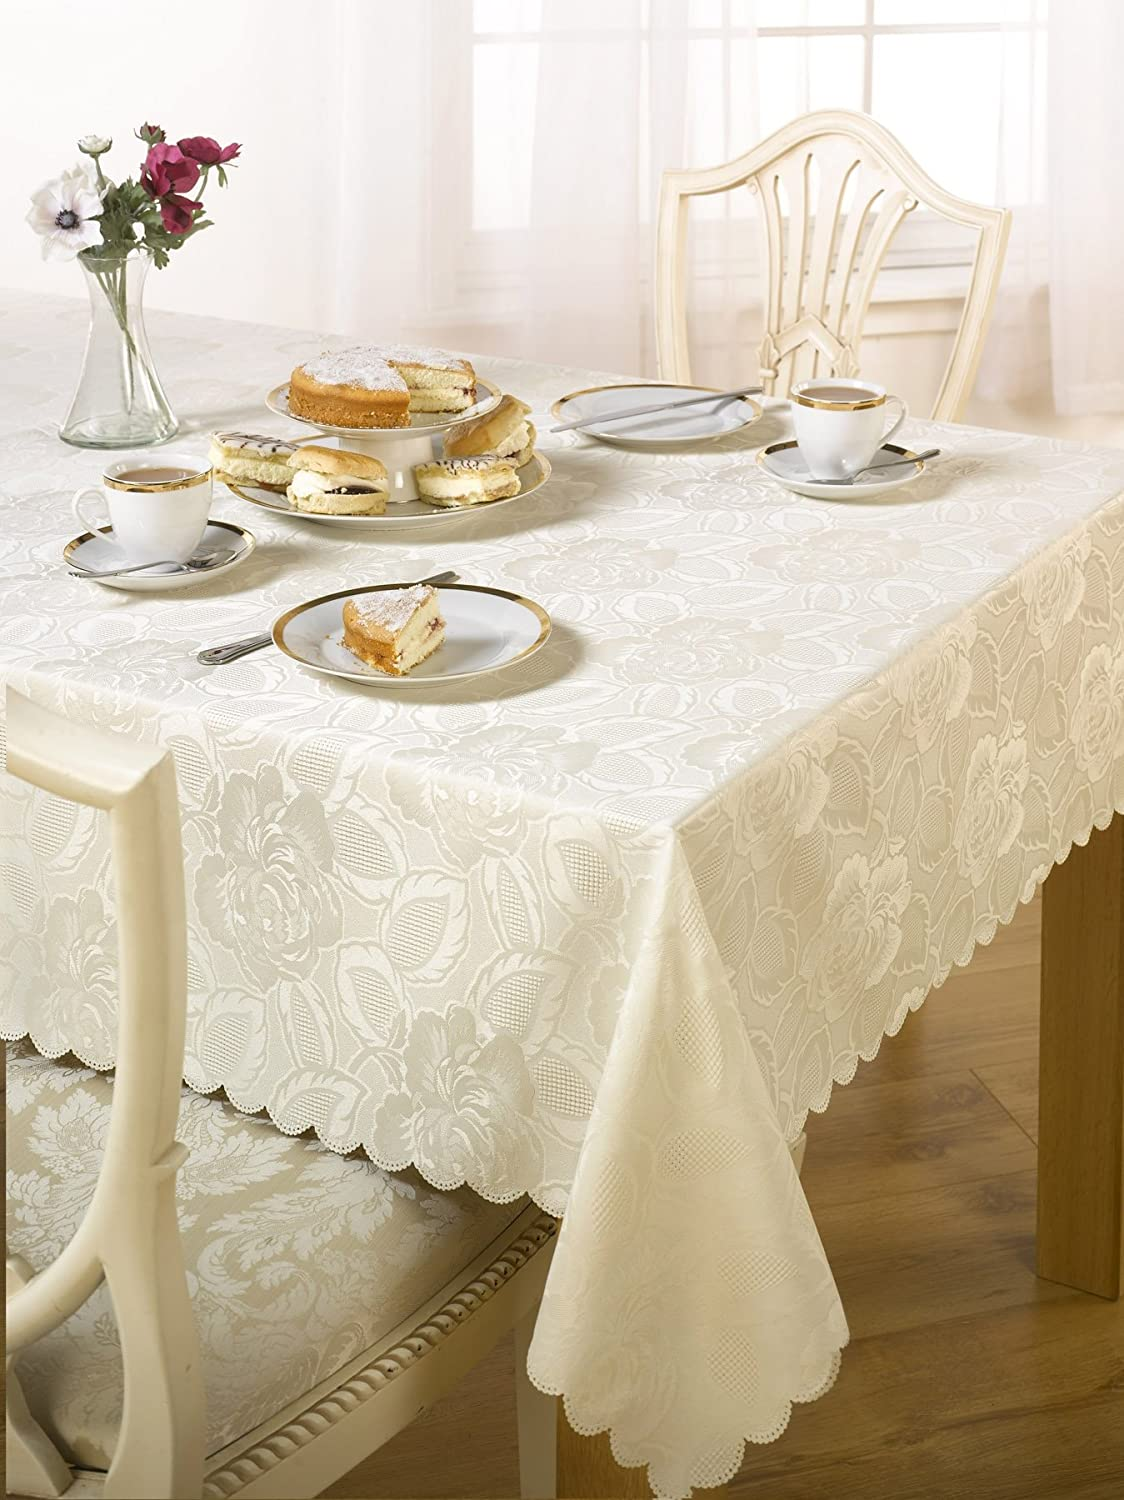 Luxury Damask Rose Tablecloth Cream 70x108 Inch Large Dining Room Table Linen Amazon Co Uk Kitchen Home